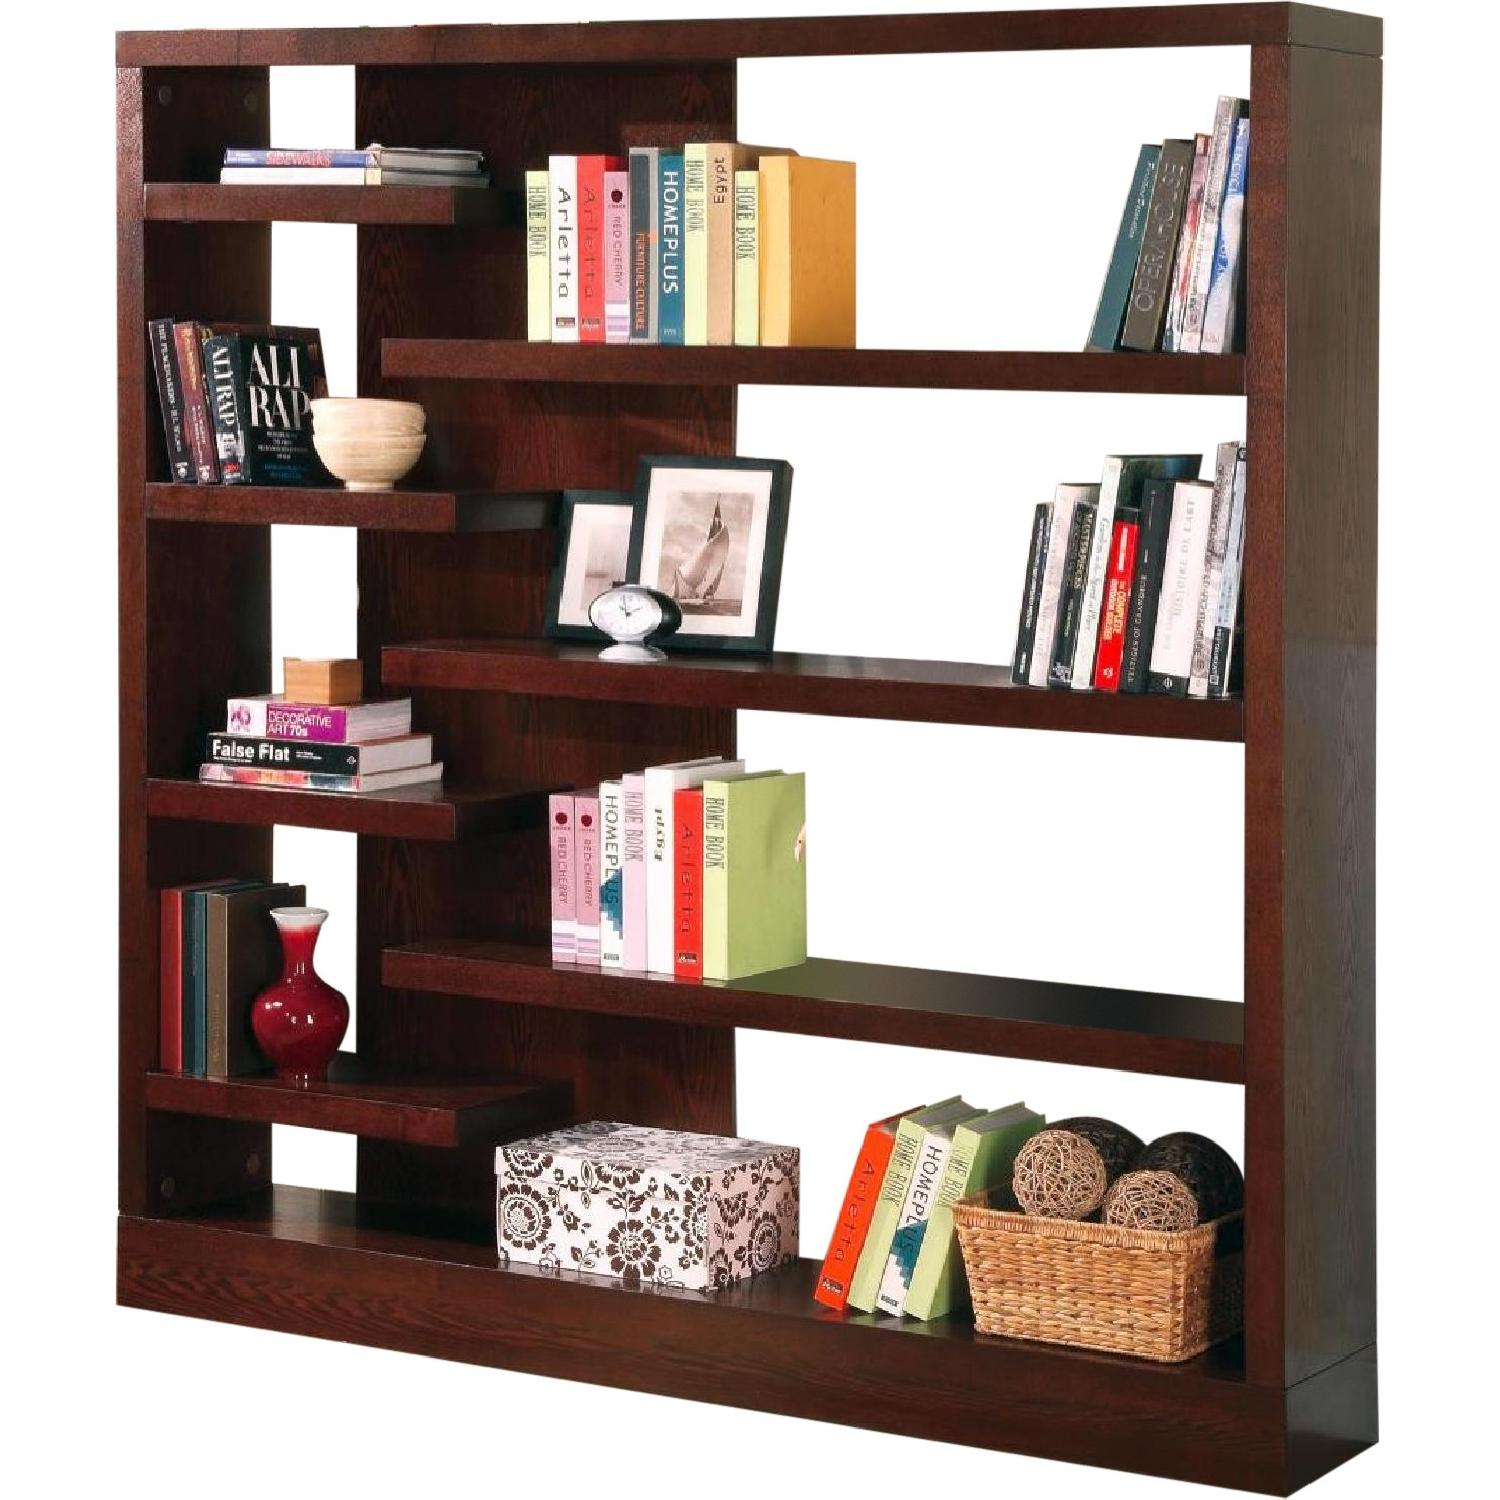 Modern Style Semi-Backless Bookcase/Display Unit in Warm Cap